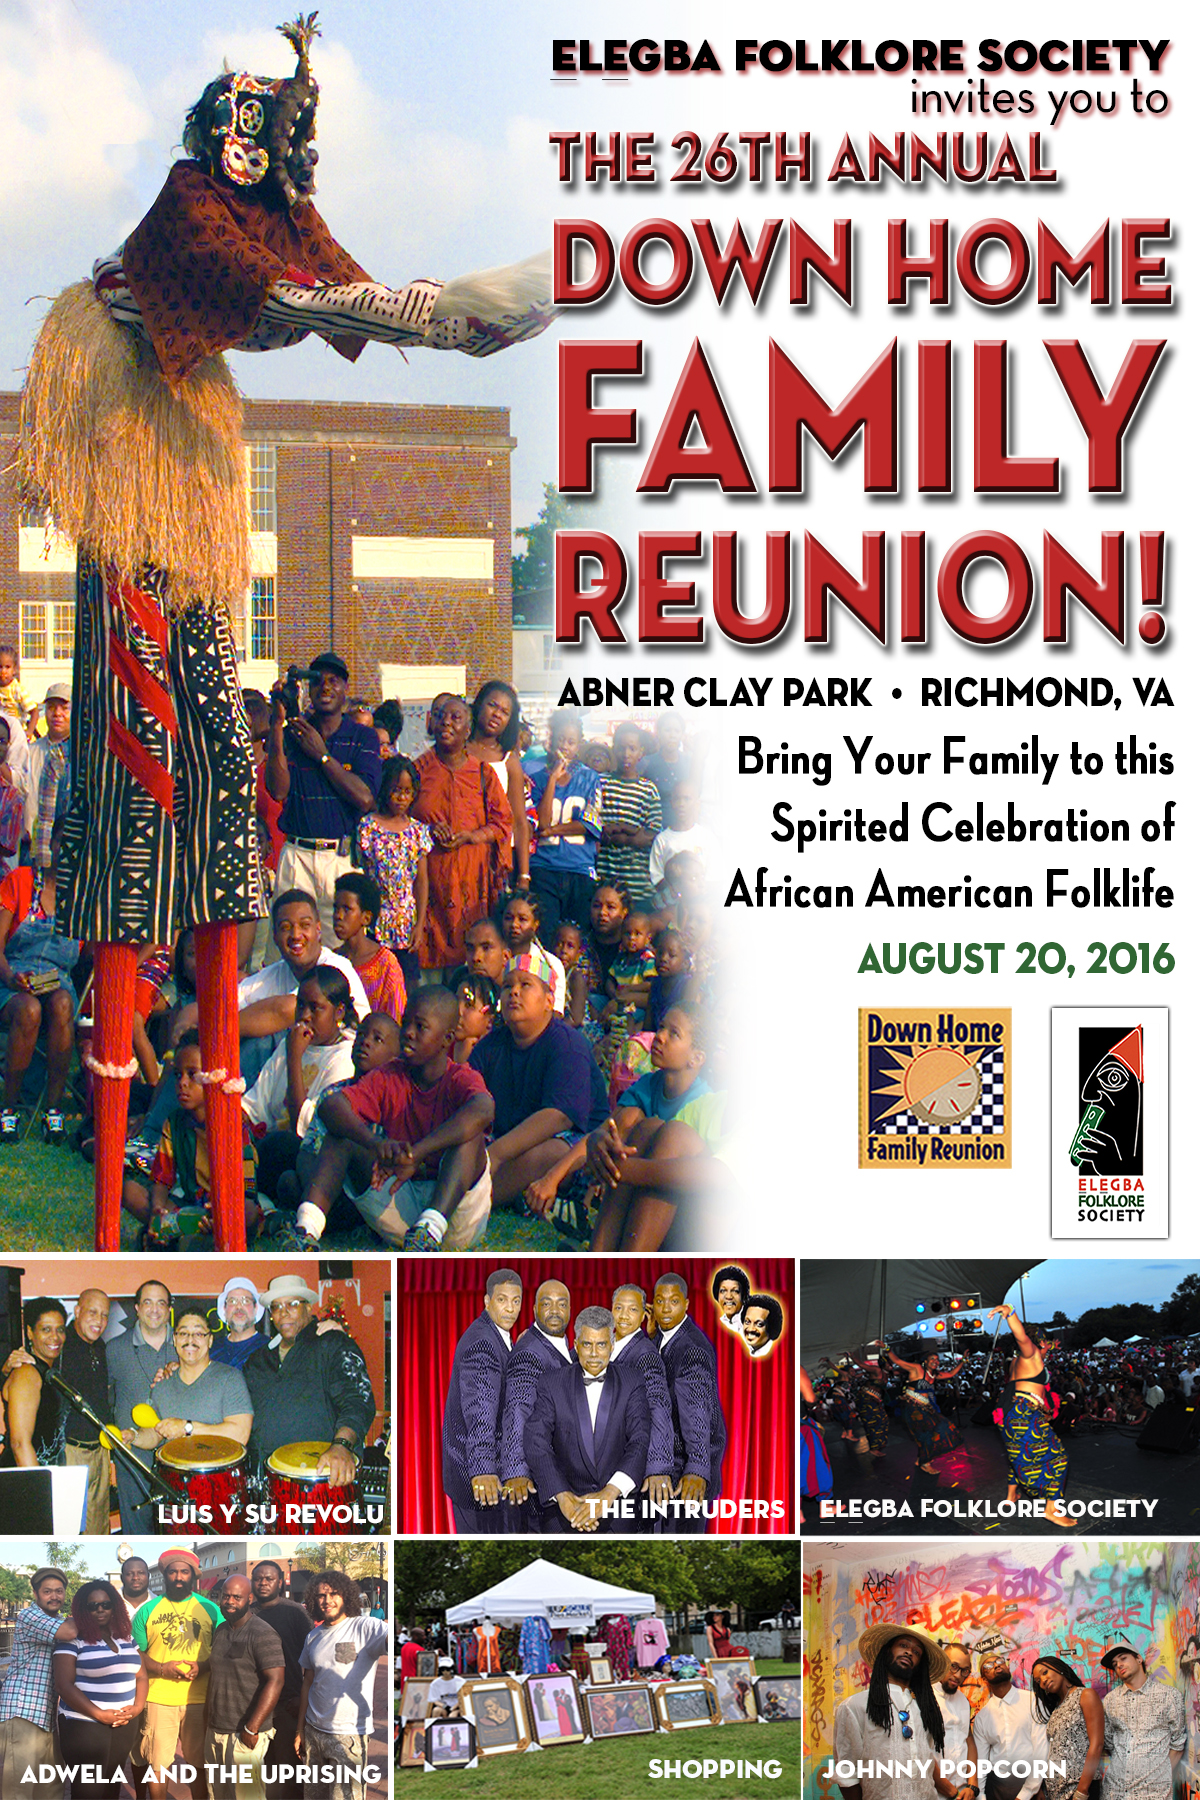 Down home family reunion a celebration of african american folklife is